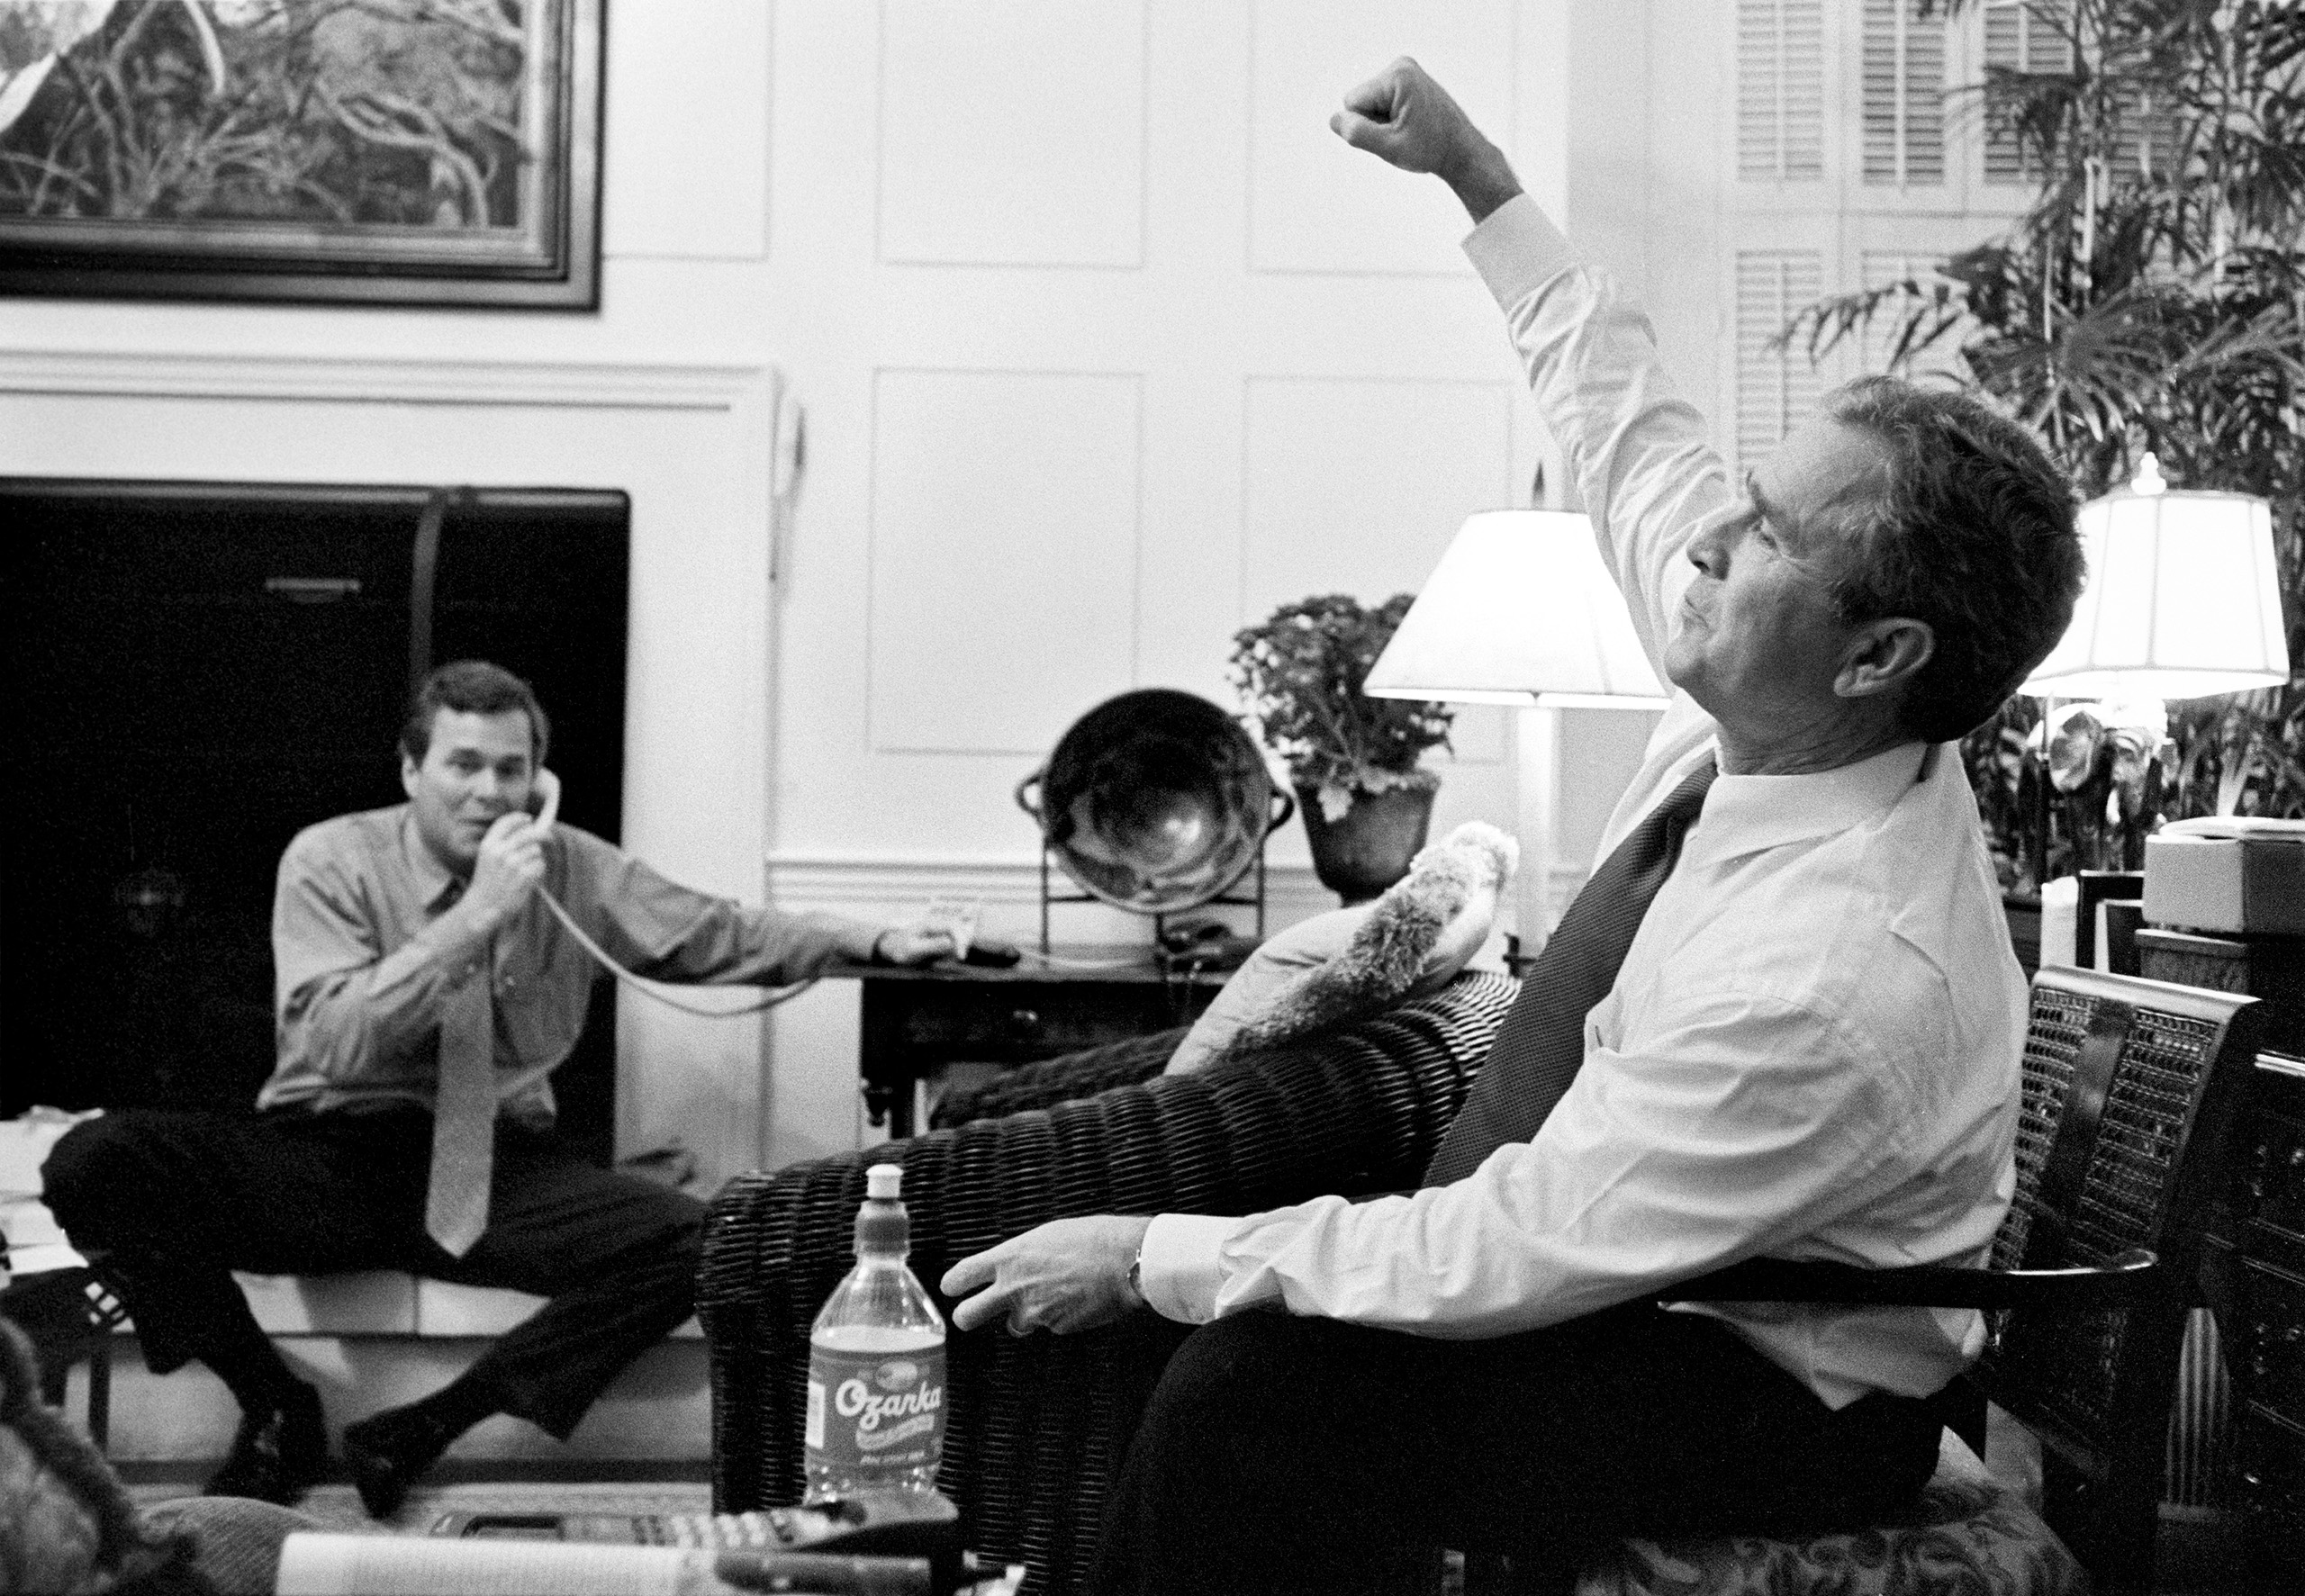 Texas governor George W. Bush celebrates good news with his brother, Florida governor Jeb Bush, while watching the presidential election returns, prior to being elected as President of the United States, inside the Governor's Mansion in Austin, Nov. 7, 2000.